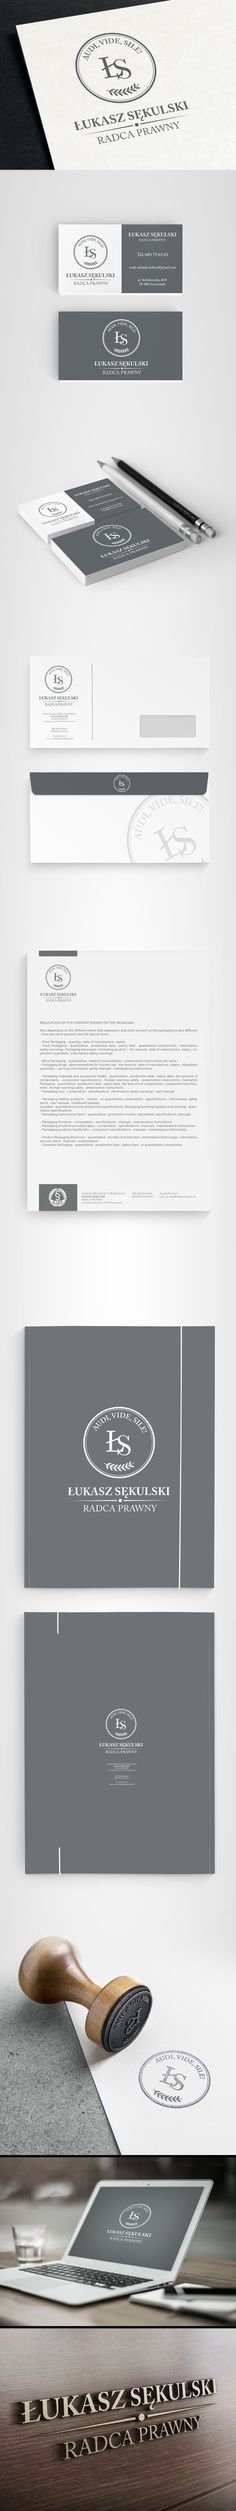 Completed brand identity for a law firm for legal advisors.